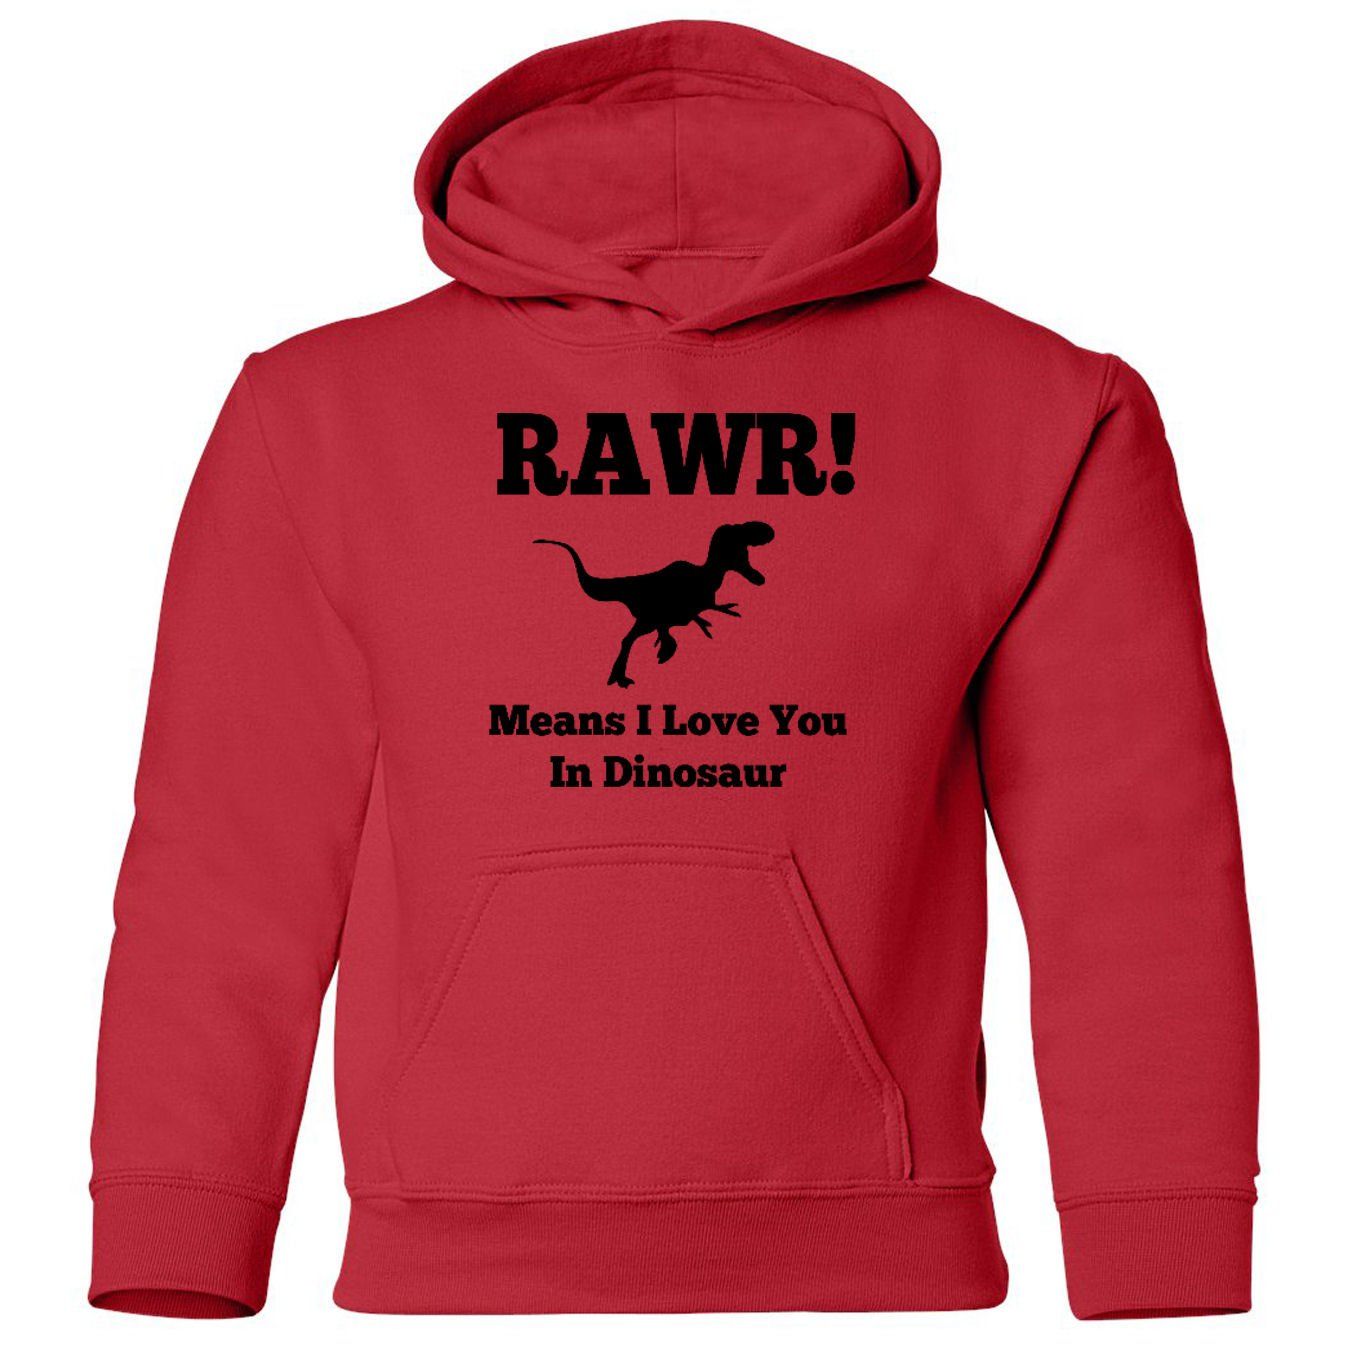 Mashed Clothing RAWR Means Love You In Dinosaur Funny Toddler Hooded Sweatshirt